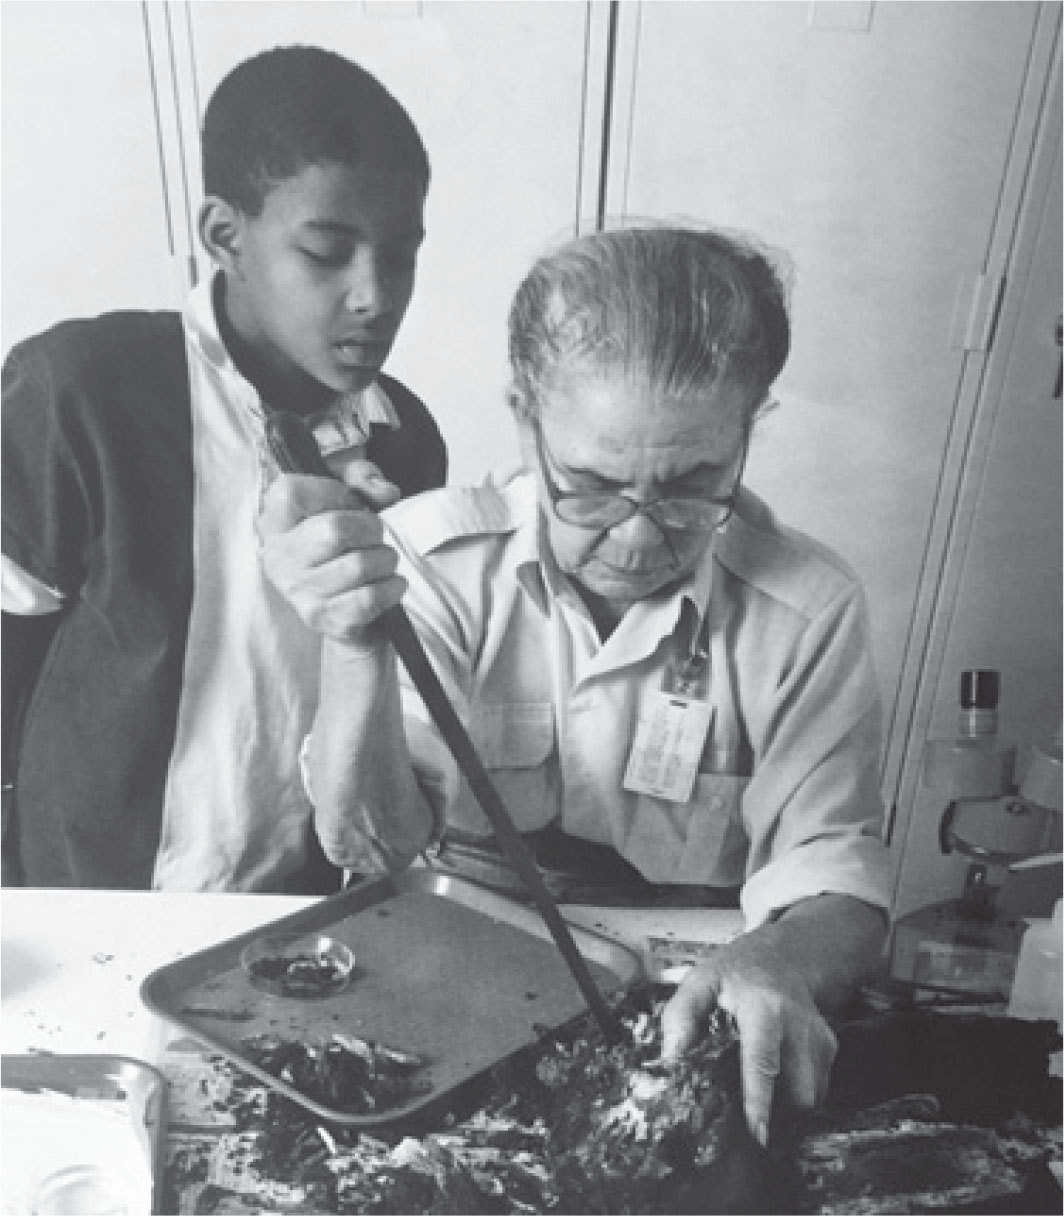 Child Prodigy Pioneer Scientist And Women And Civil Rights Advocate Dr Margaret James Strickland Collins 1922 1996